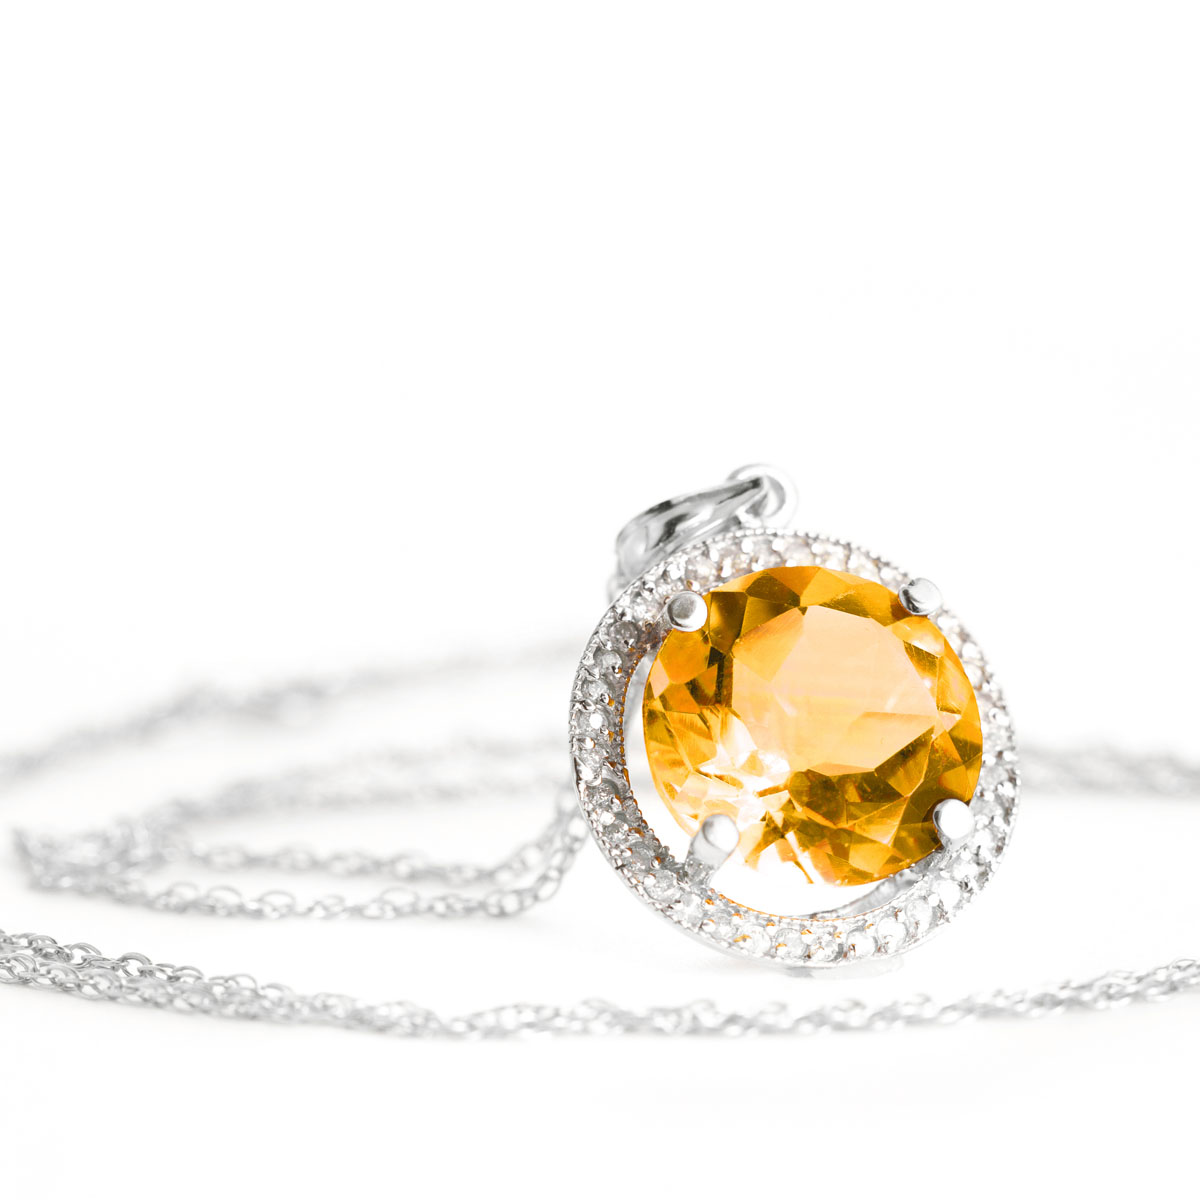 Citrine Halo Pendant Necklace 6.2 ctw in 9ct White Gold